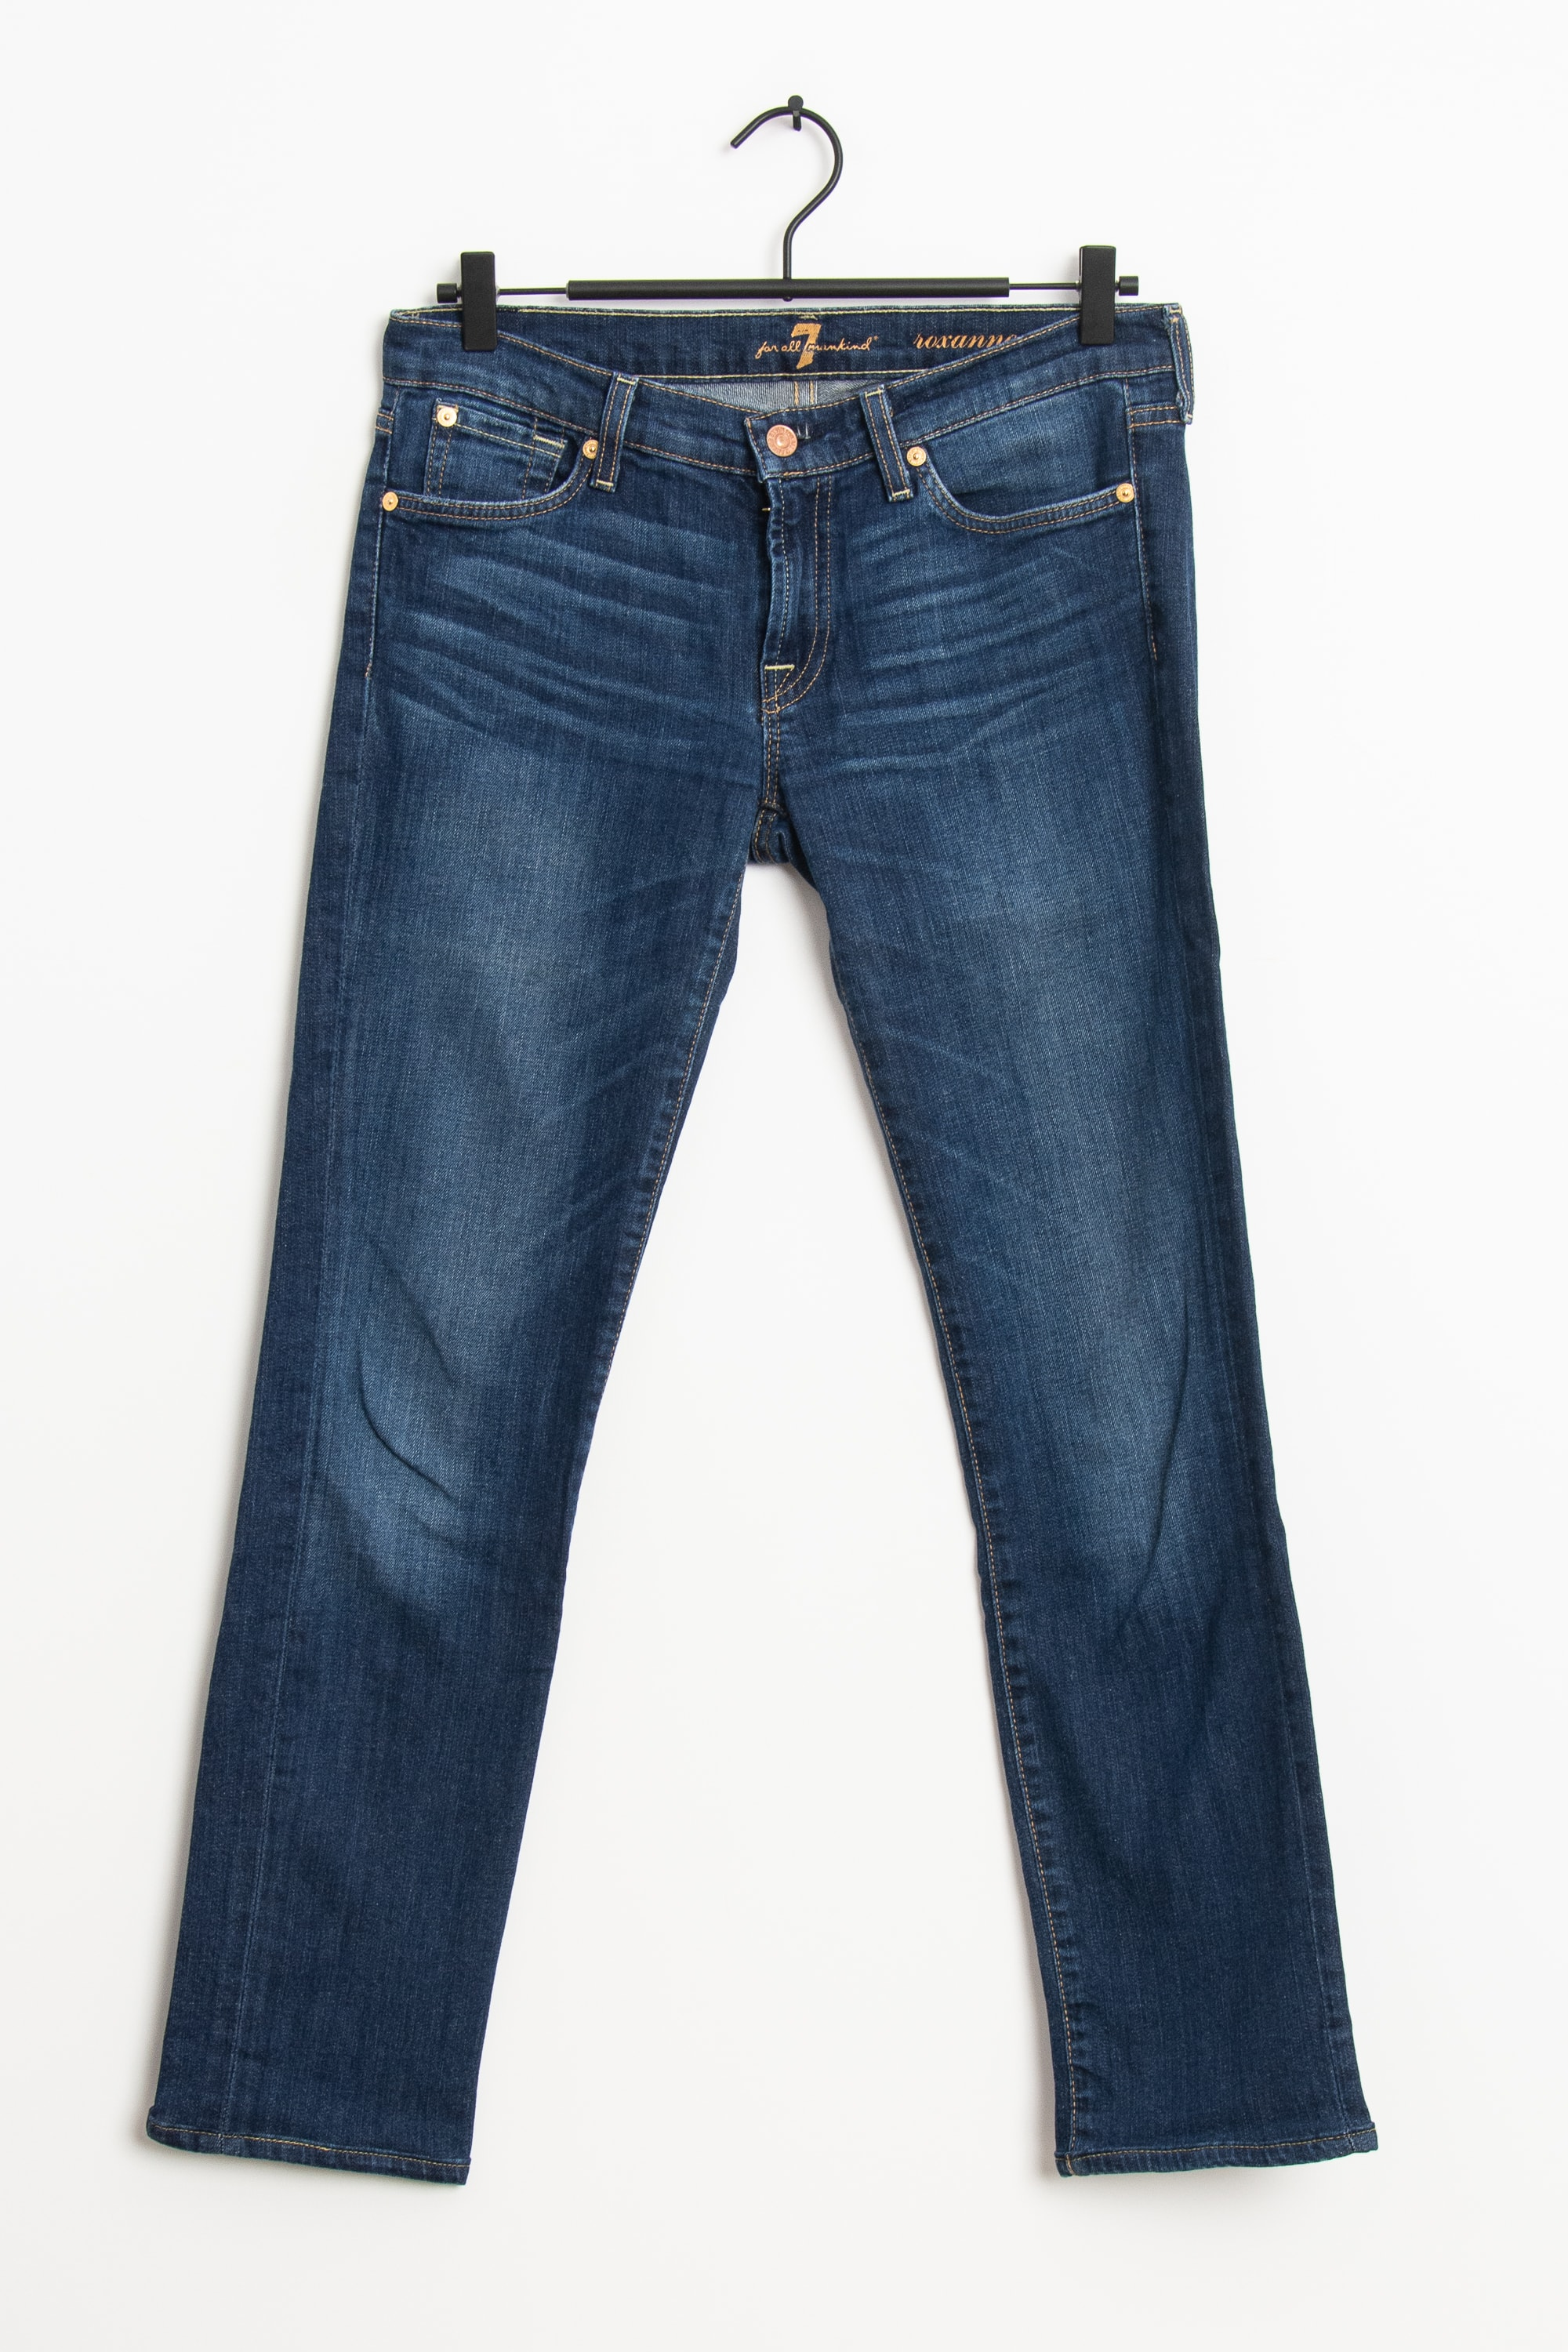 7 for all mankind Jeans Blau Gr.38